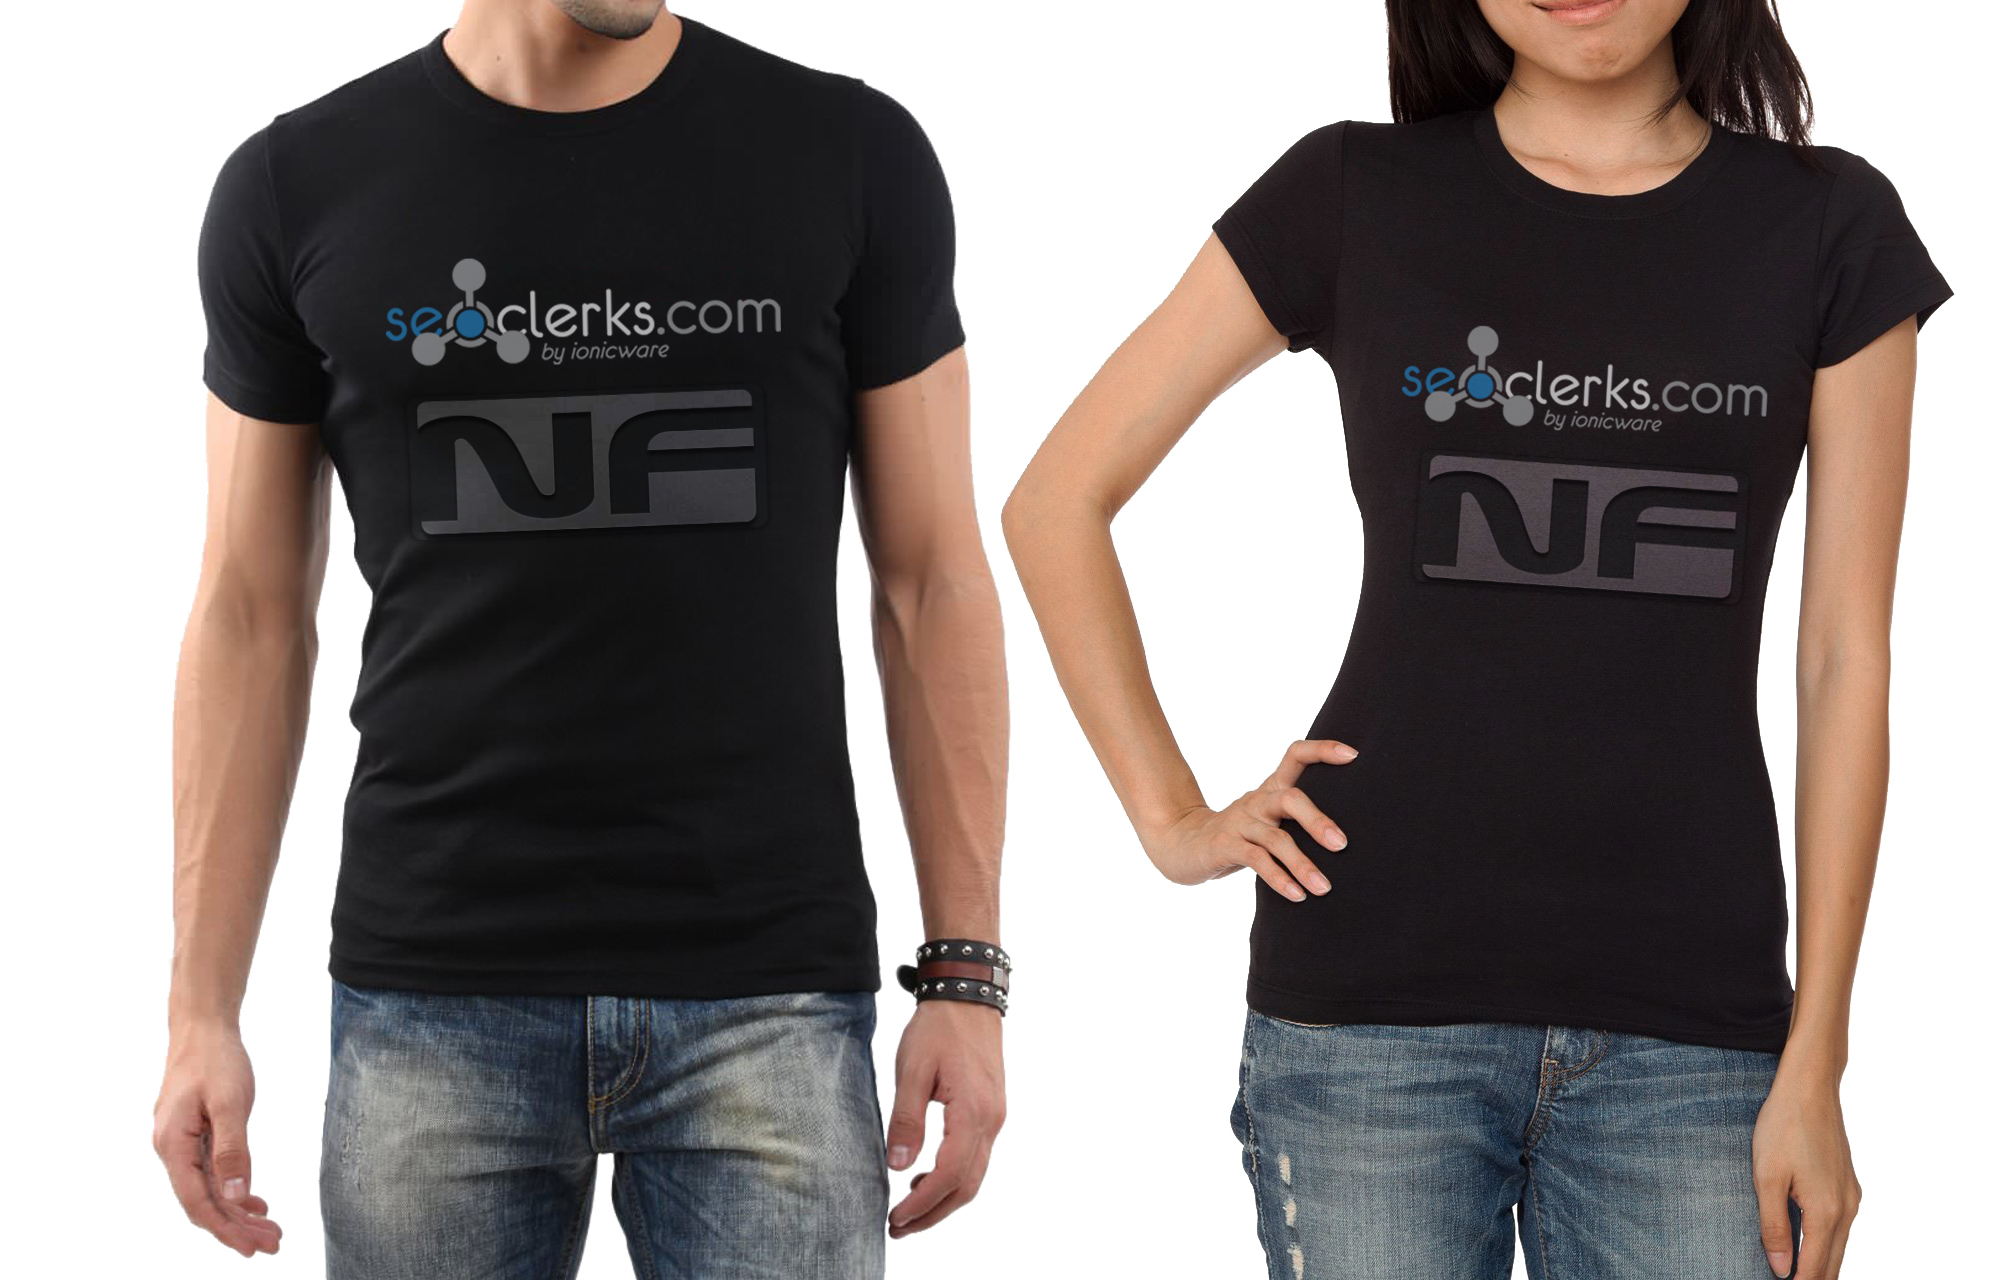 I will create a professional TShirt design for you